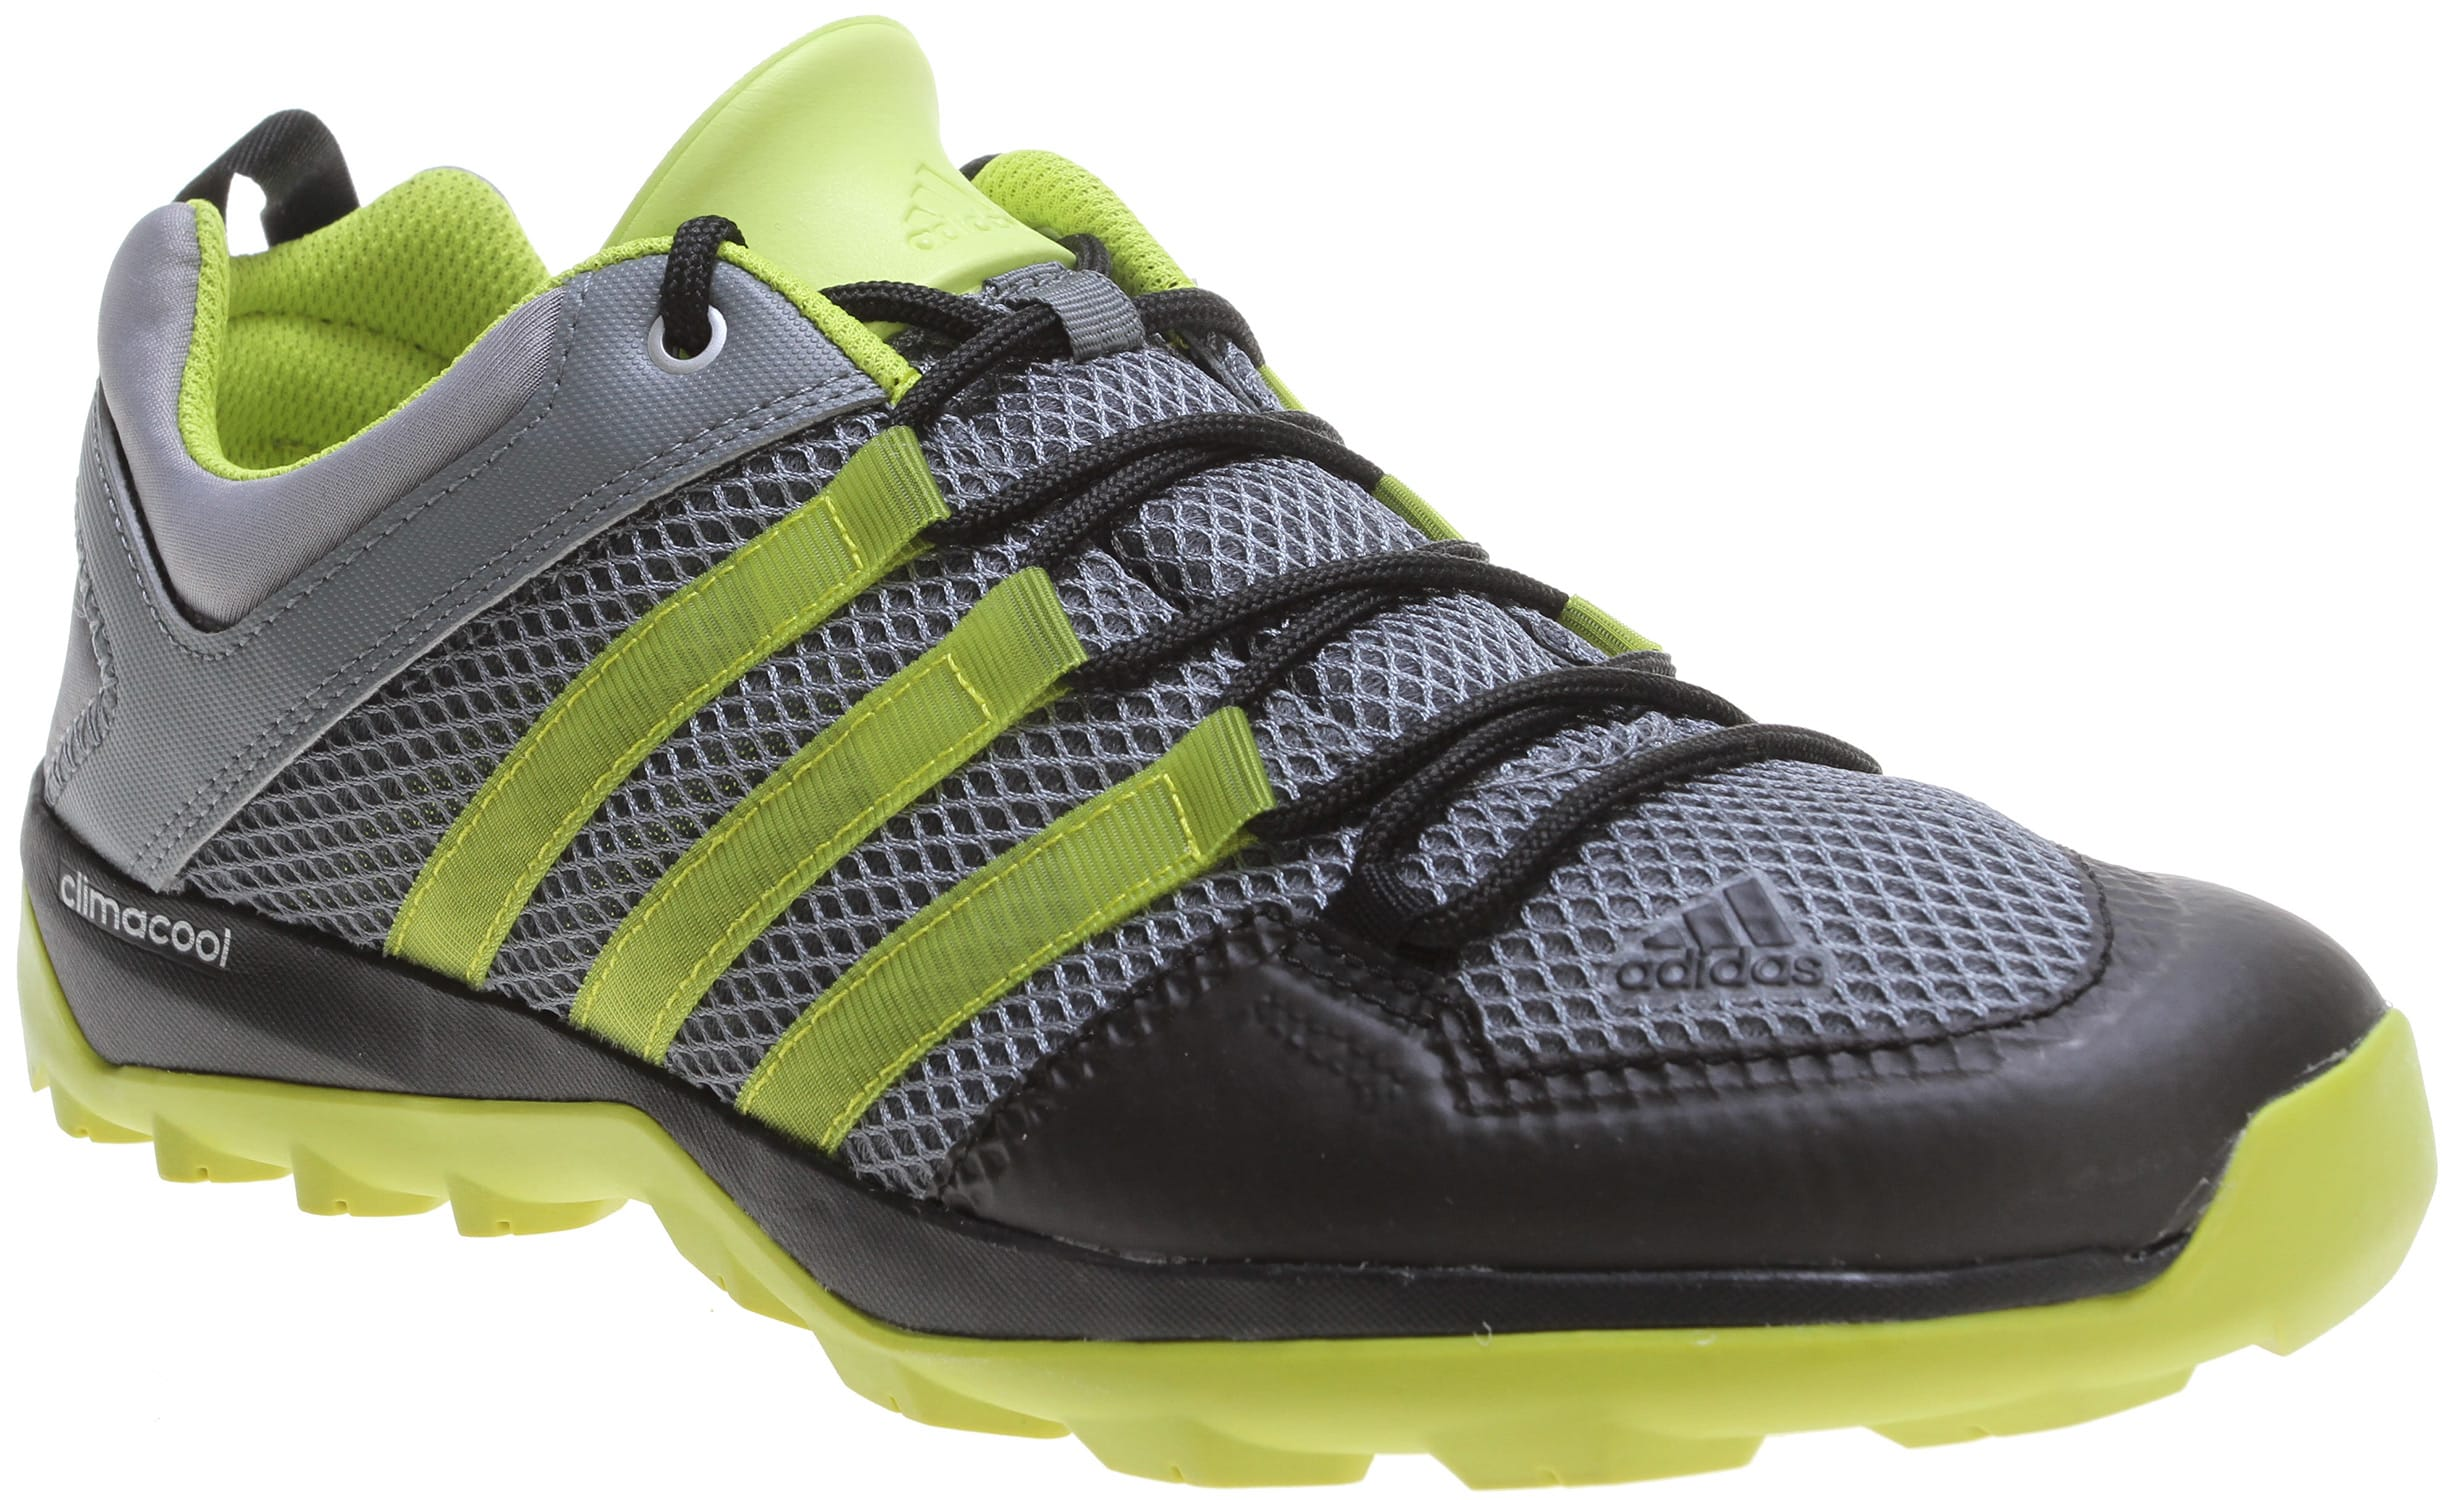 sale adidas climacool daroga plus shoe